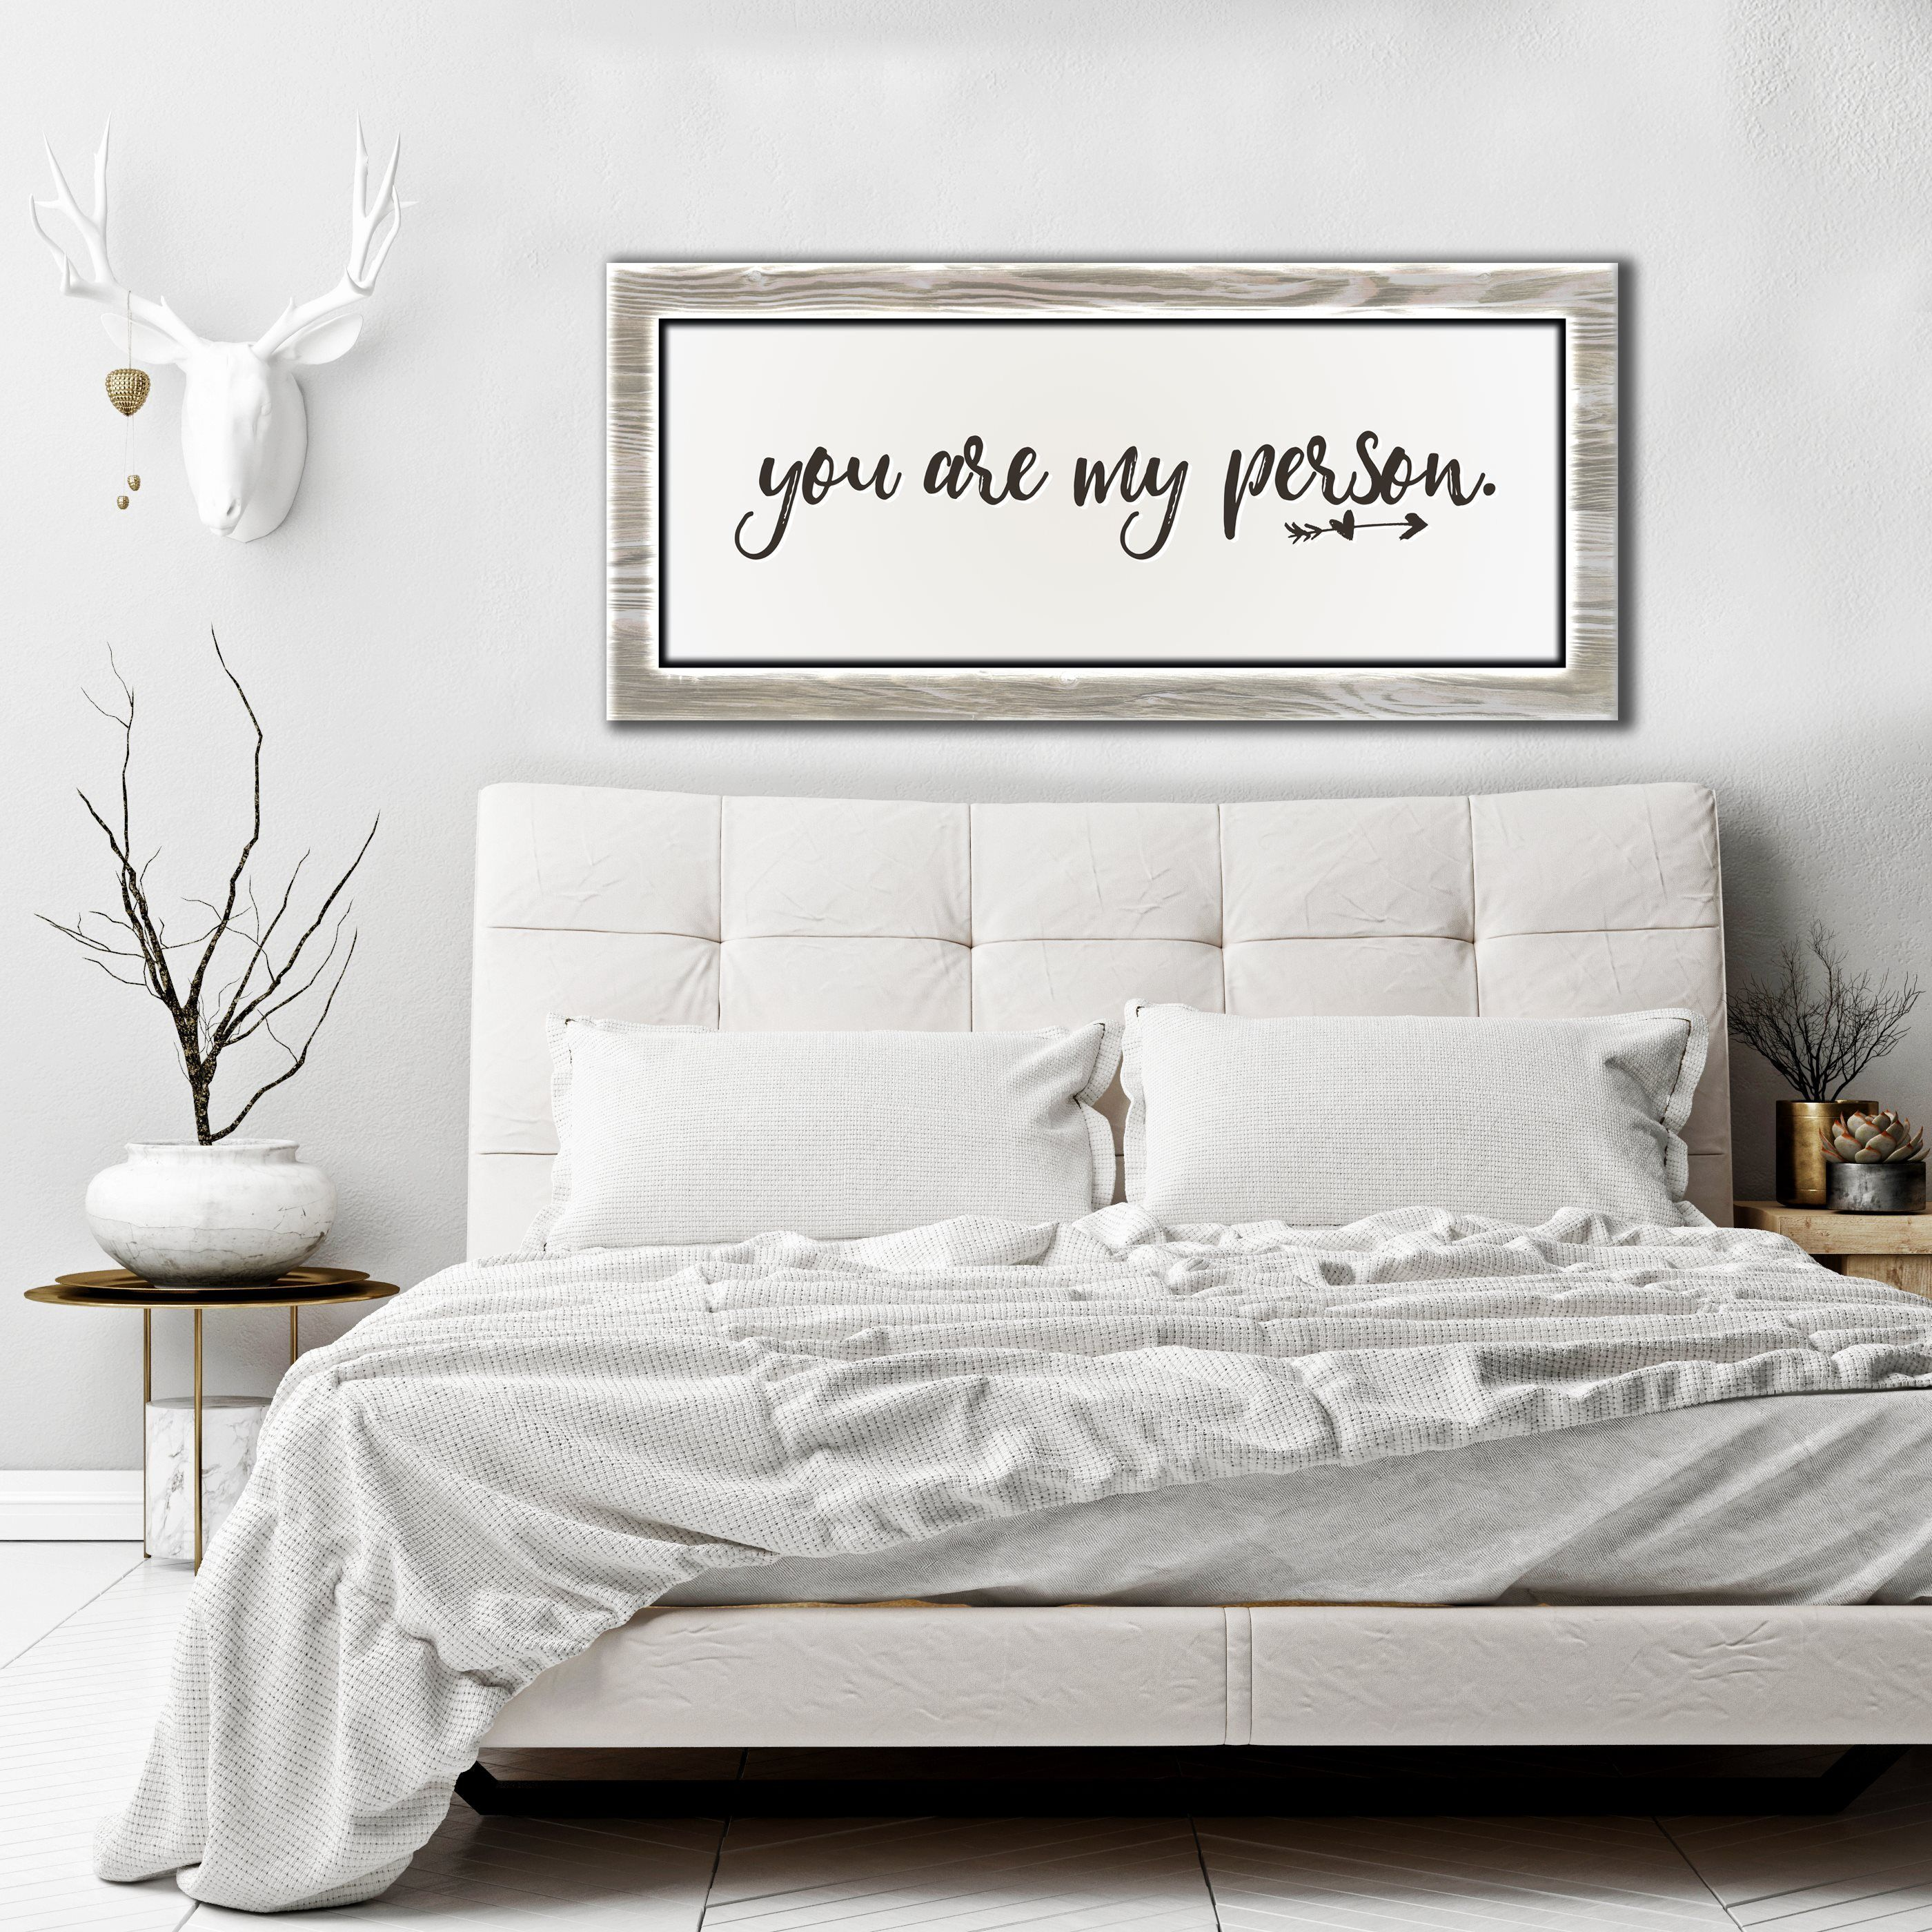 Bedroom Wall Art You Are My Person (Wood Frame Ready To